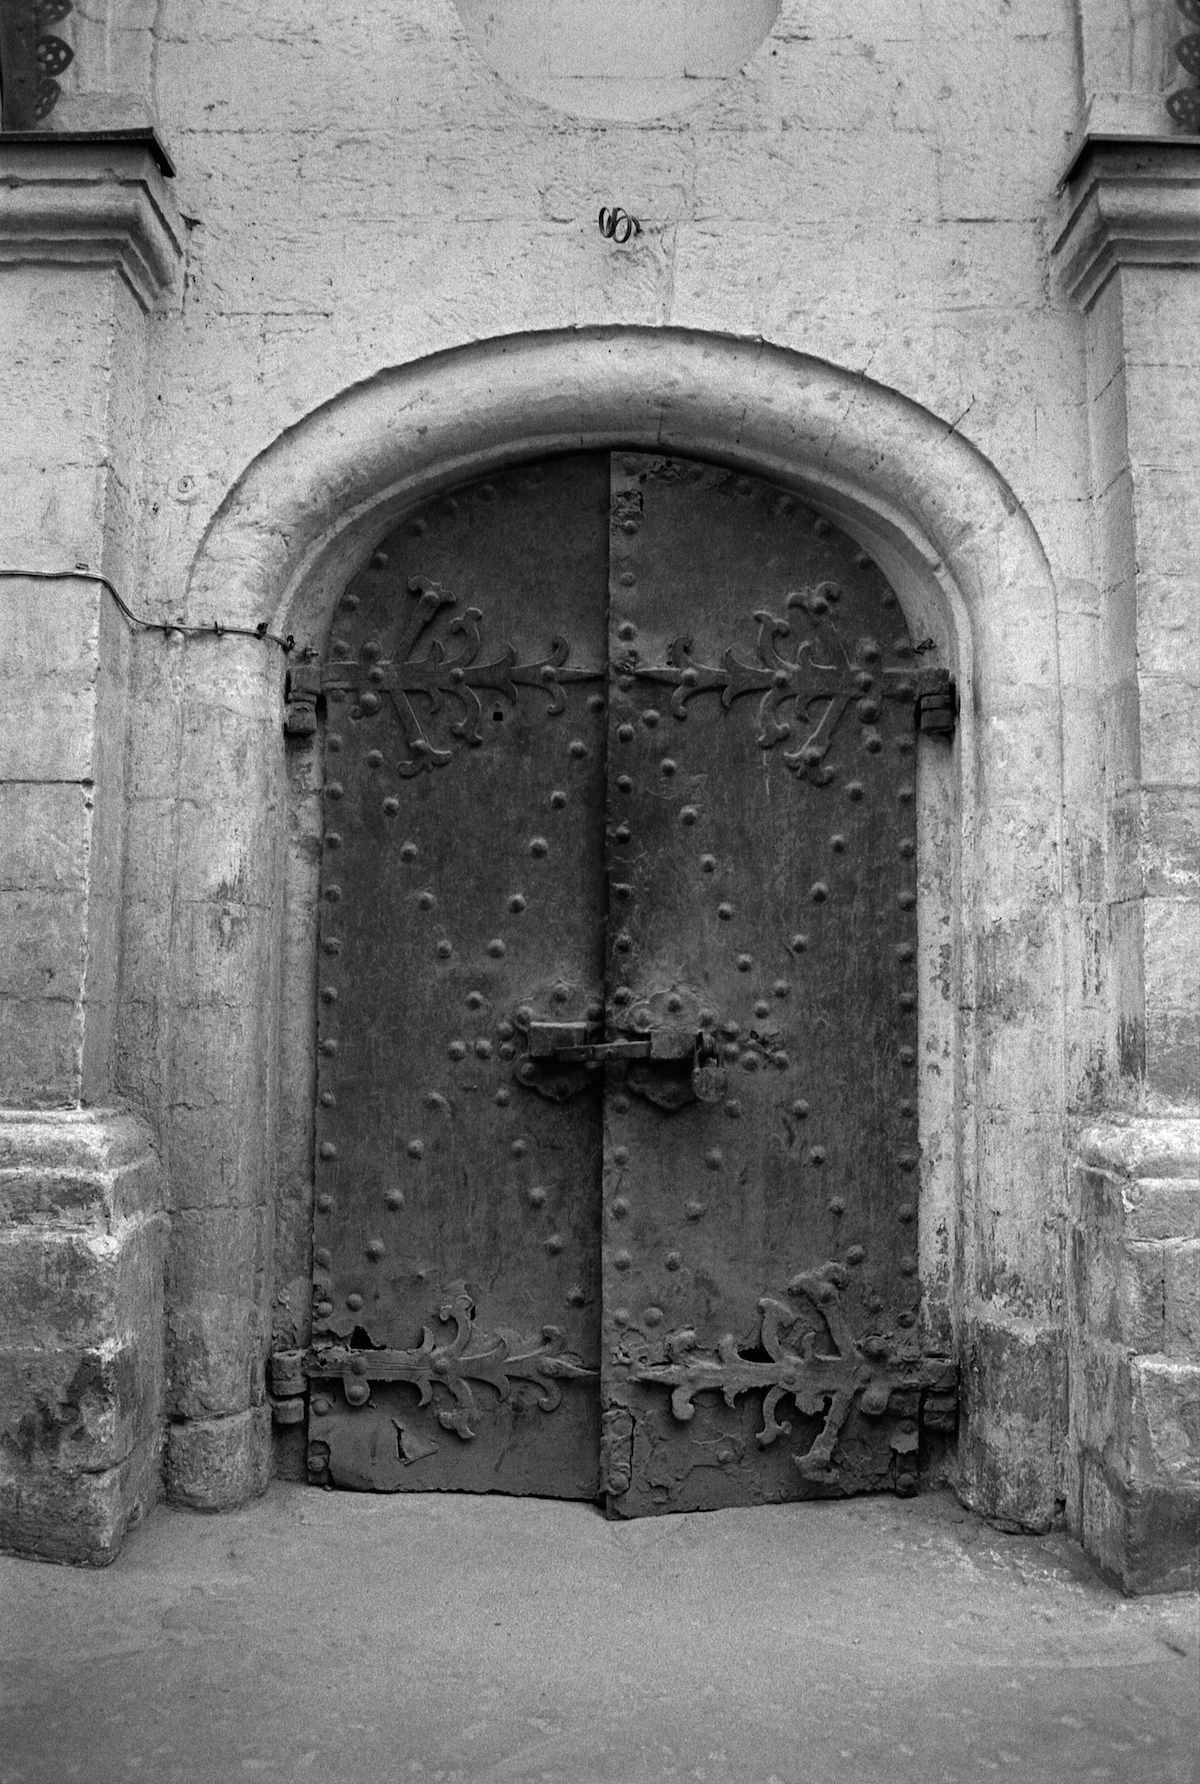 048-MOSCOW-Old-door-RGC-SMALL.jpg